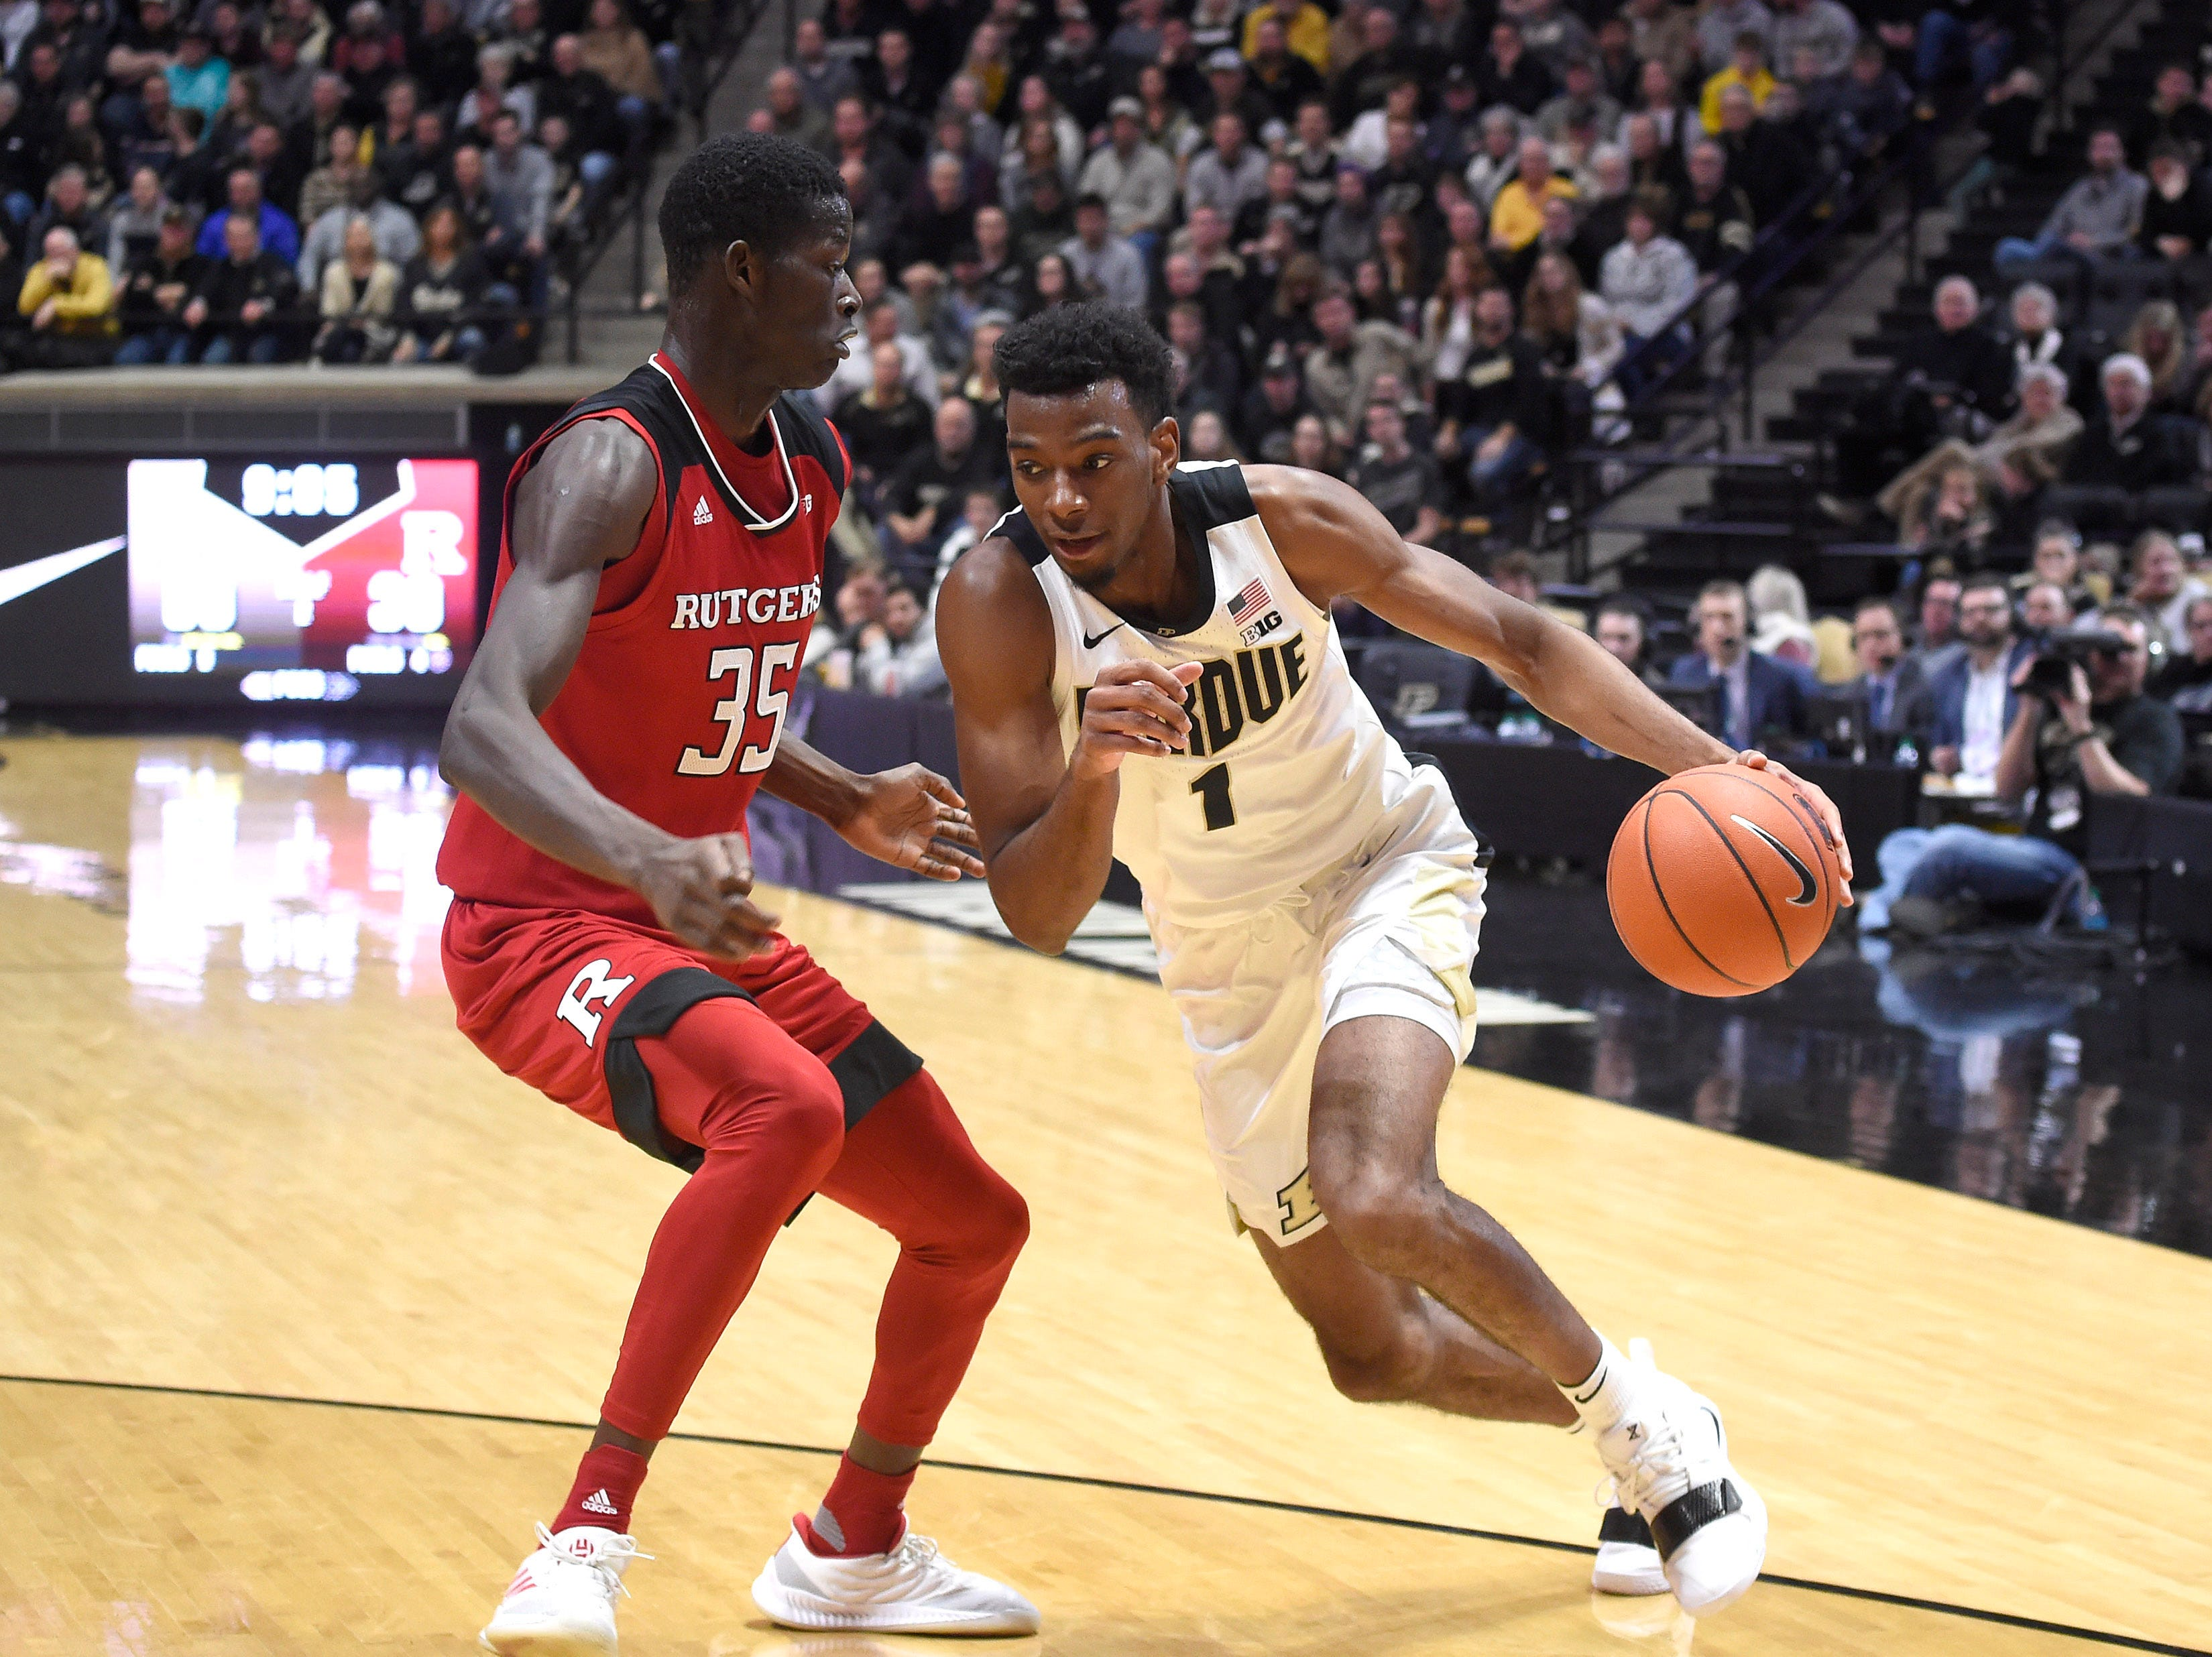 Jan 15, 2019; West Lafayette, IN, USA; Purdue Boilermakers forward Aaron Wheeler (1) drives past Rutgers Scarlet Knights forward Issa Thiam (35) in the 2nd half at Mackey Arena. Mandatory Credit: Sandra Dukes-USA TODAY Sports